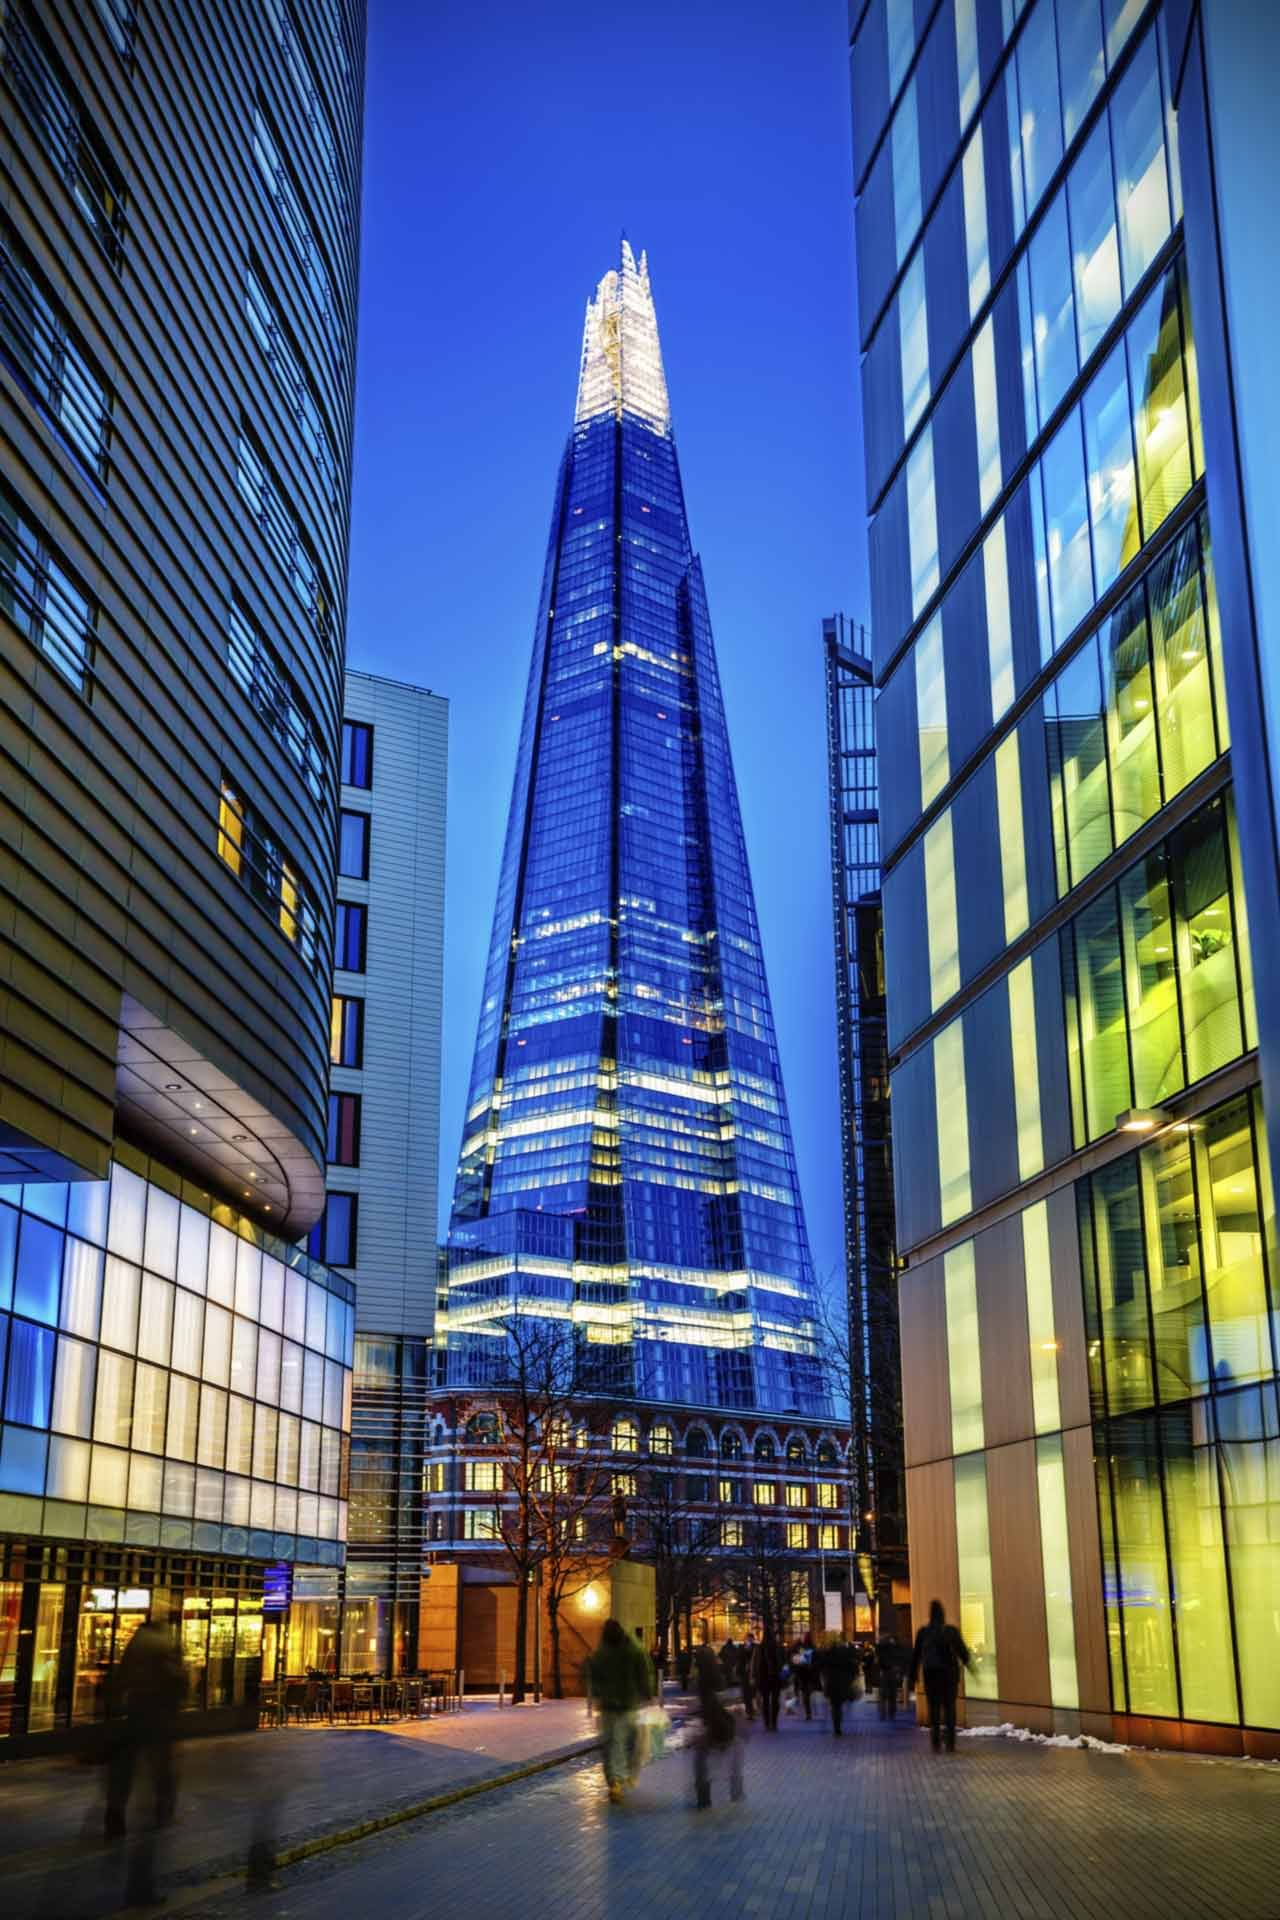 Night View Of The Shard In London